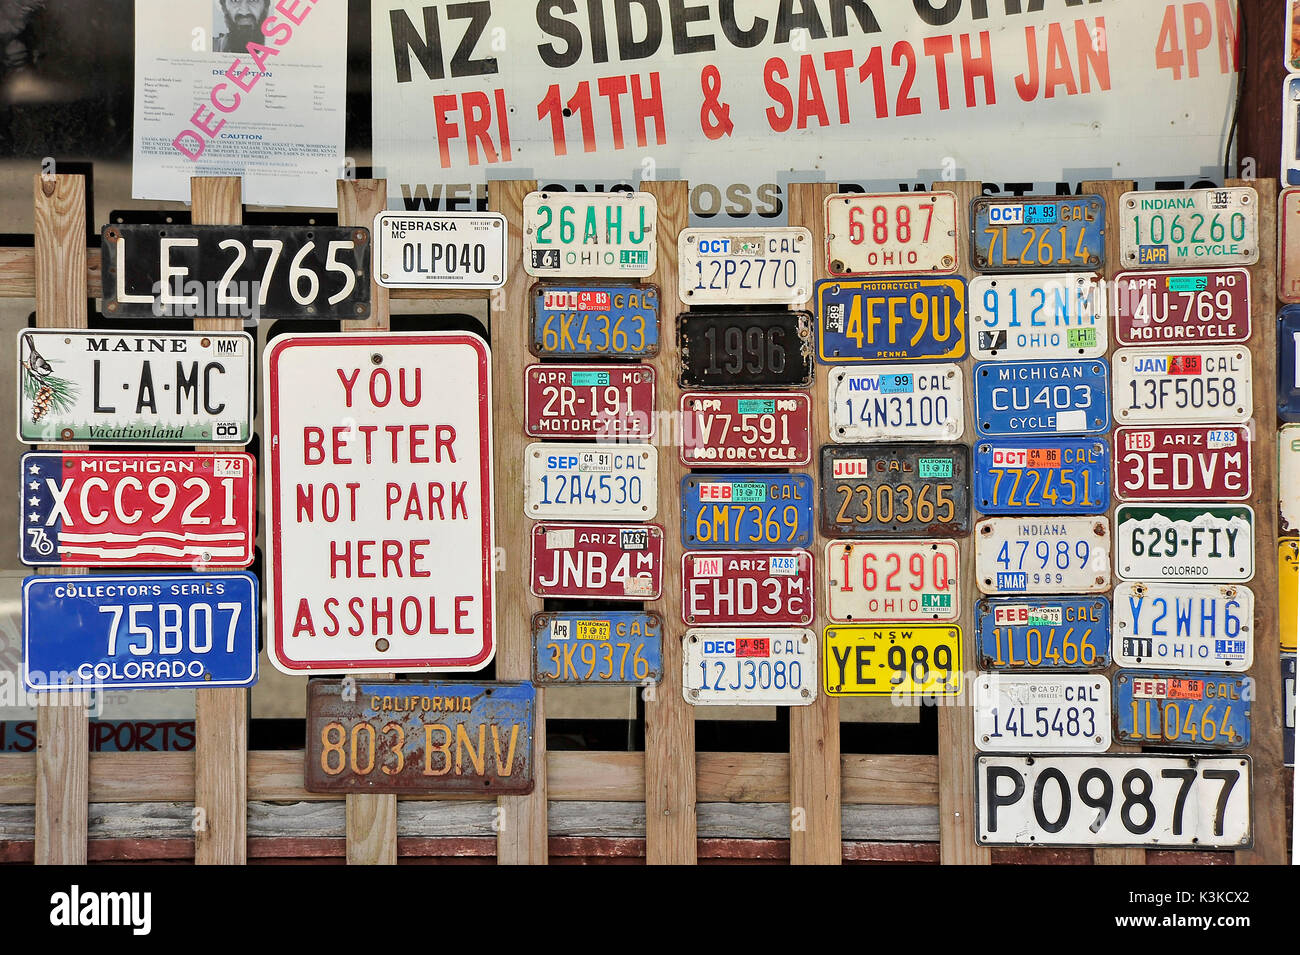 Number Plates Stock Photos & Number Plates Stock Images - Alamy